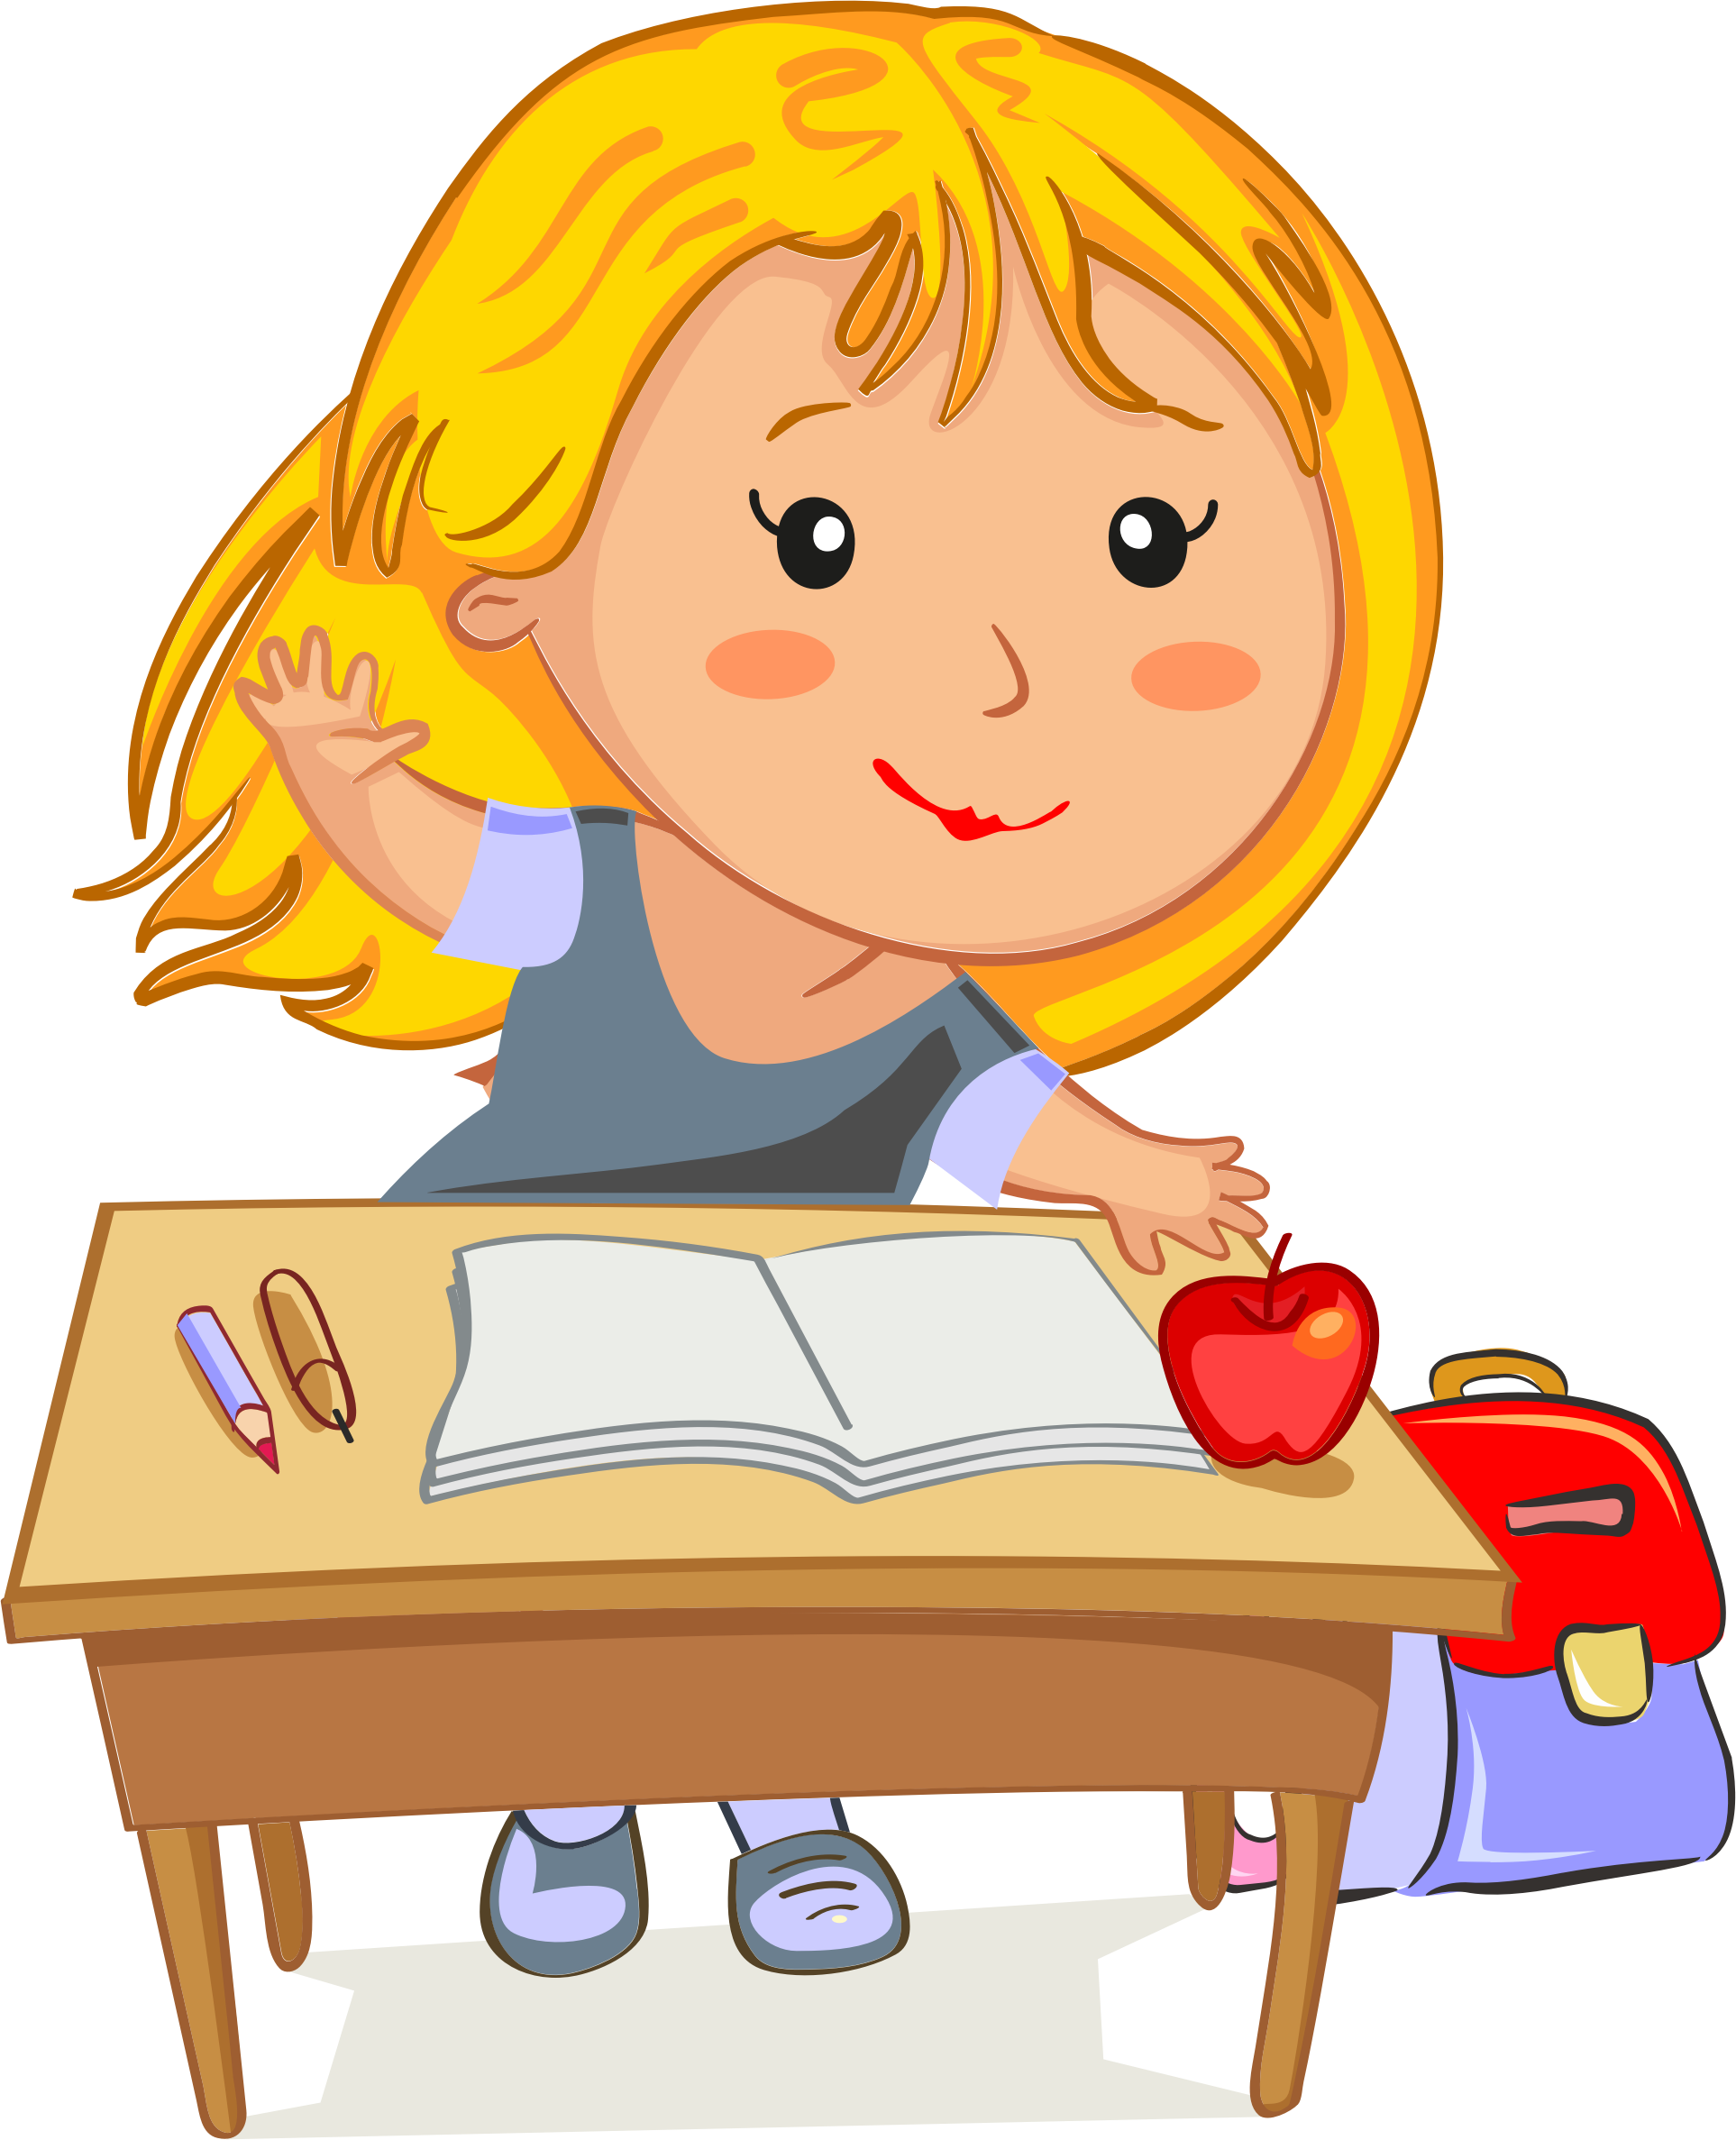 Blonde Girl Raising Her Hand Sitting At Her Desk In School by GDJ